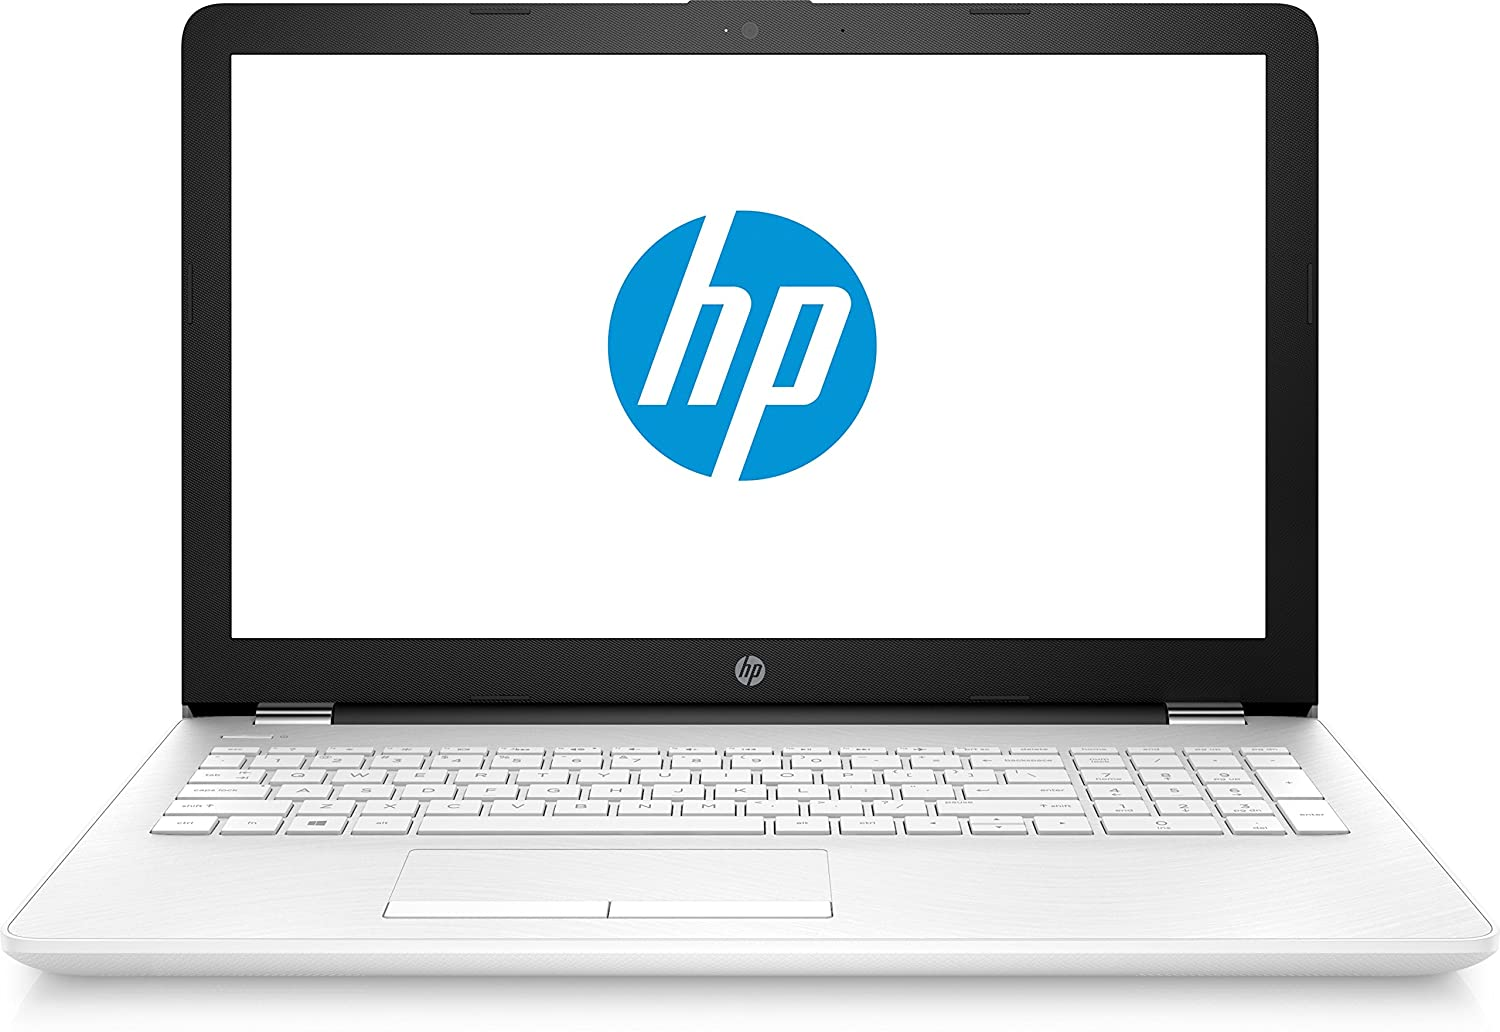 TALLA Disco duro de 1 TB. HP Notebook 15-BS533NS - Portátil de 15.6